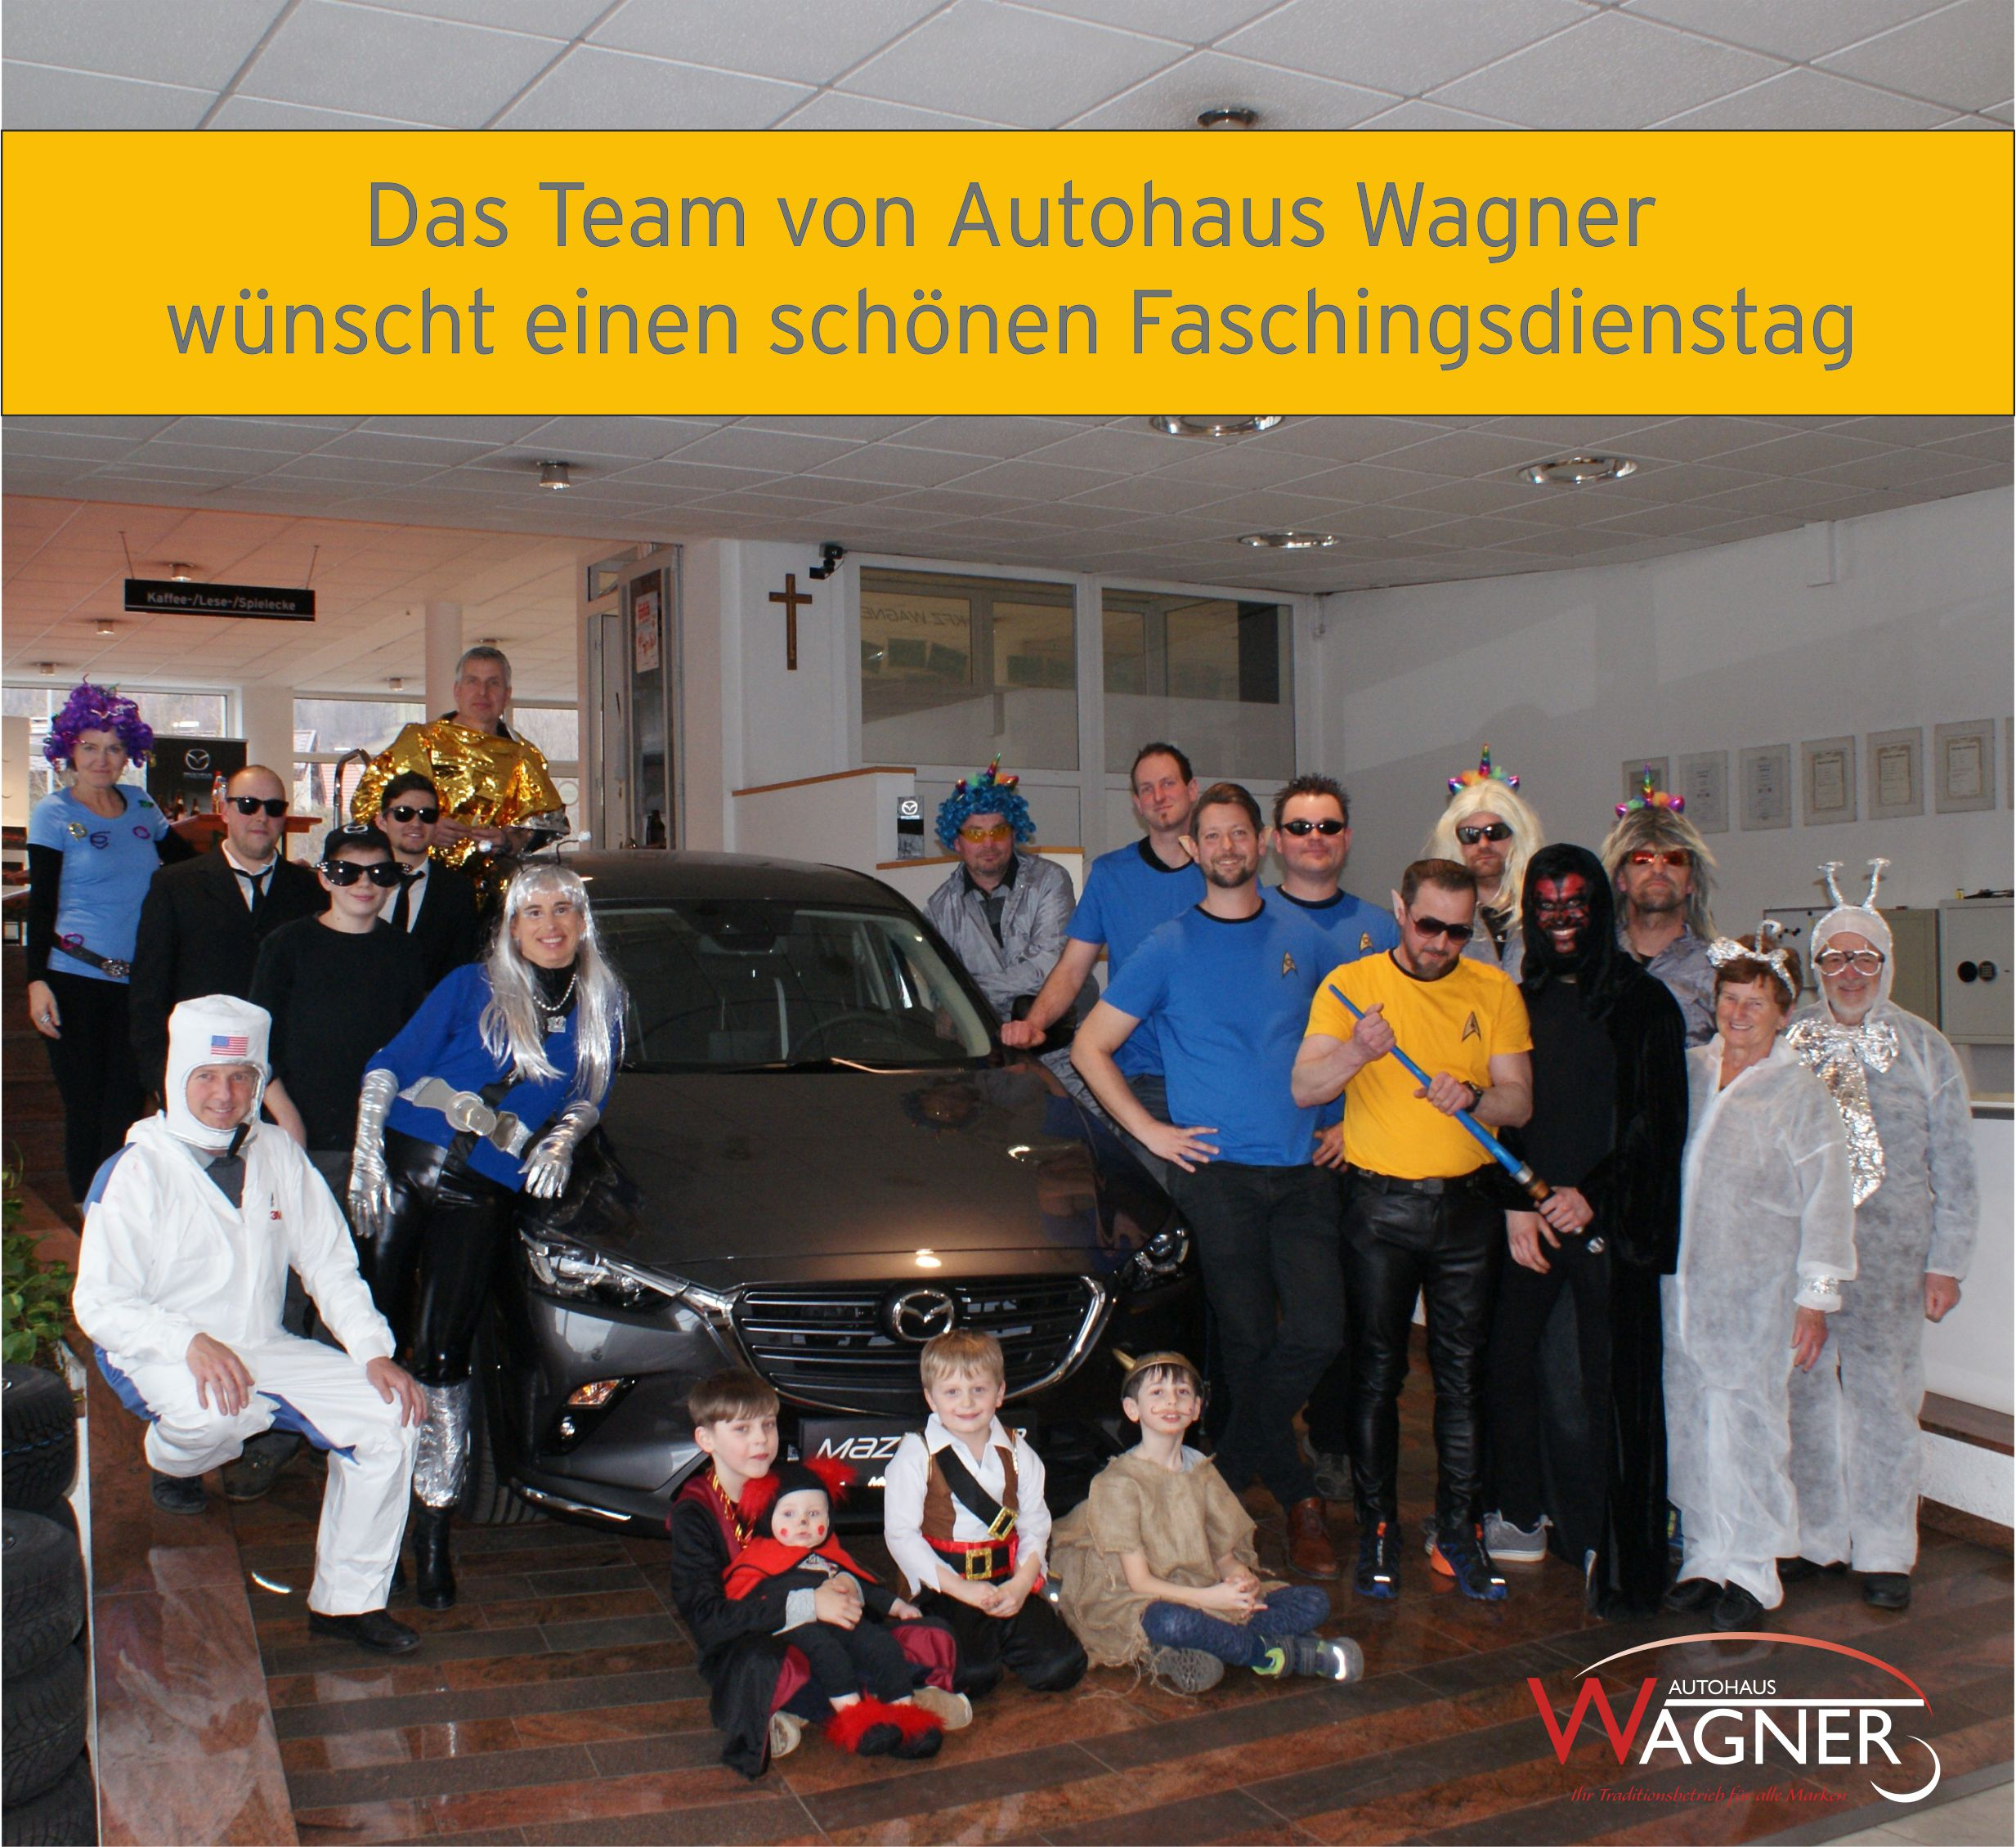 https://wagner.mazda.at/wp-content/uploads/sites/12/2019/03/Fasching2019.jpg